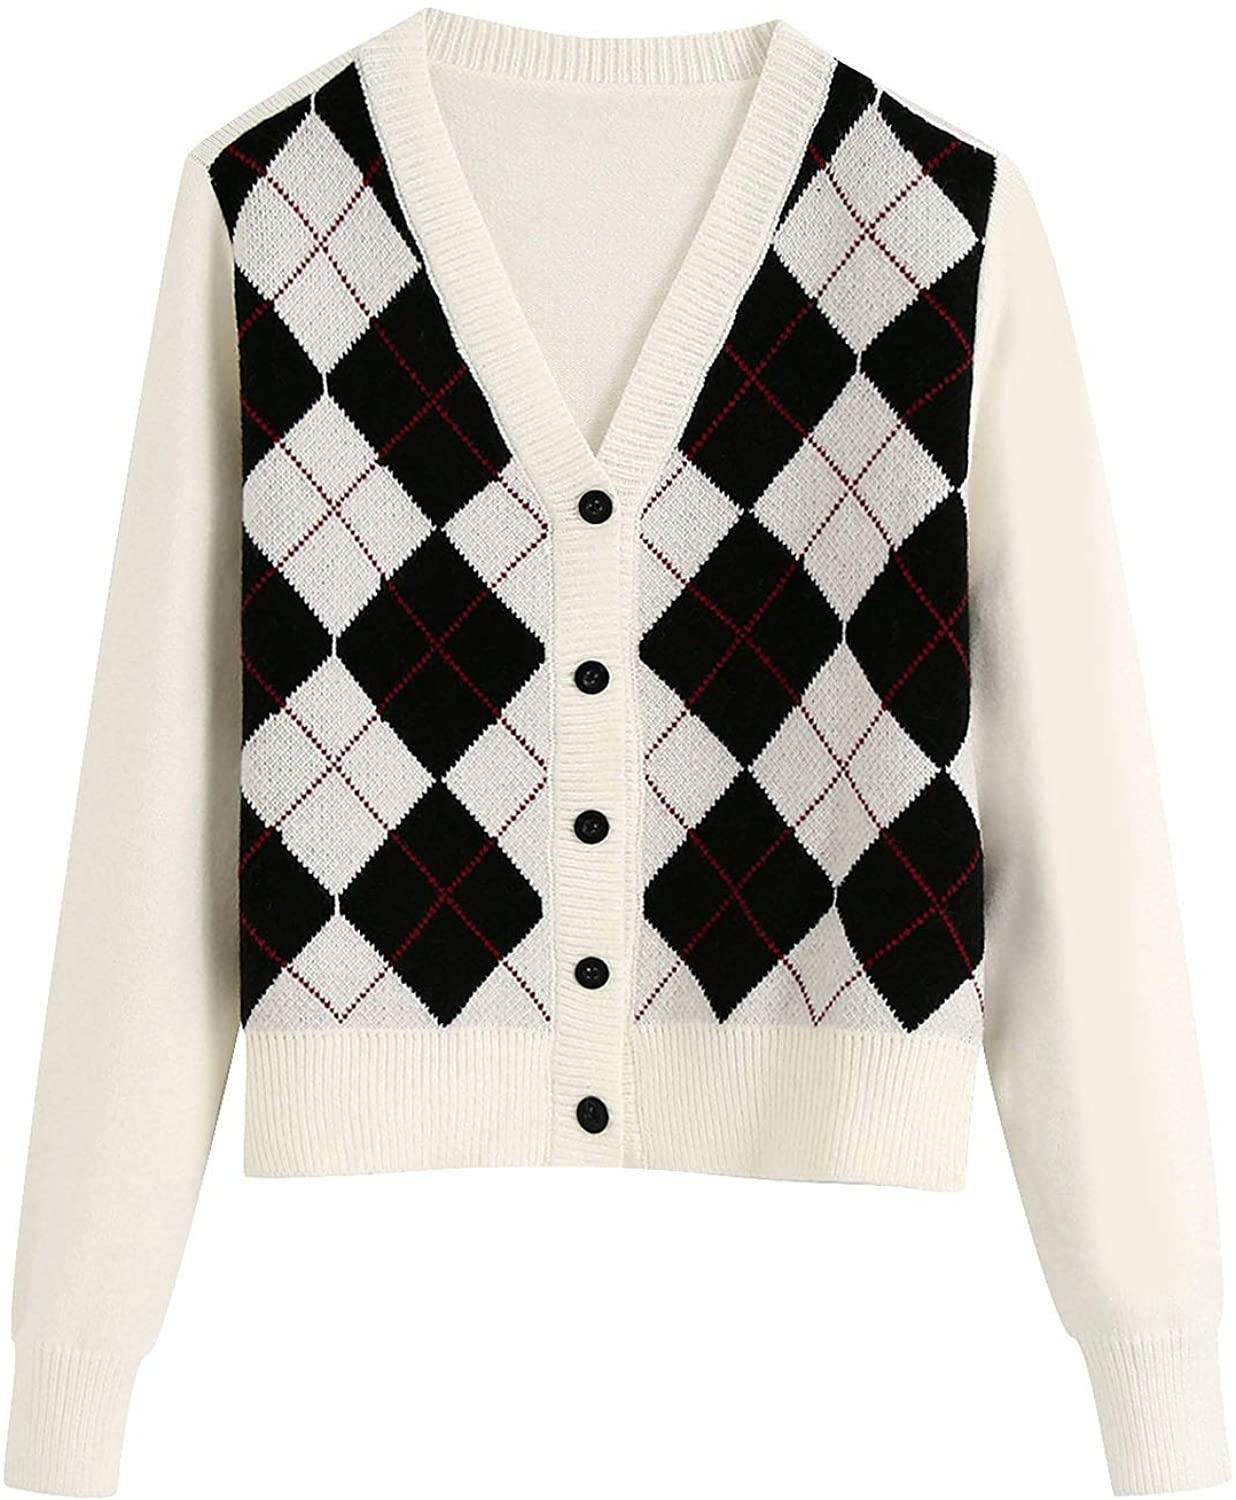 Womens Long Sleeve Argyle Sweater Button Down V-Neck Slim Fit Knitted Cropped Cardigan Tops